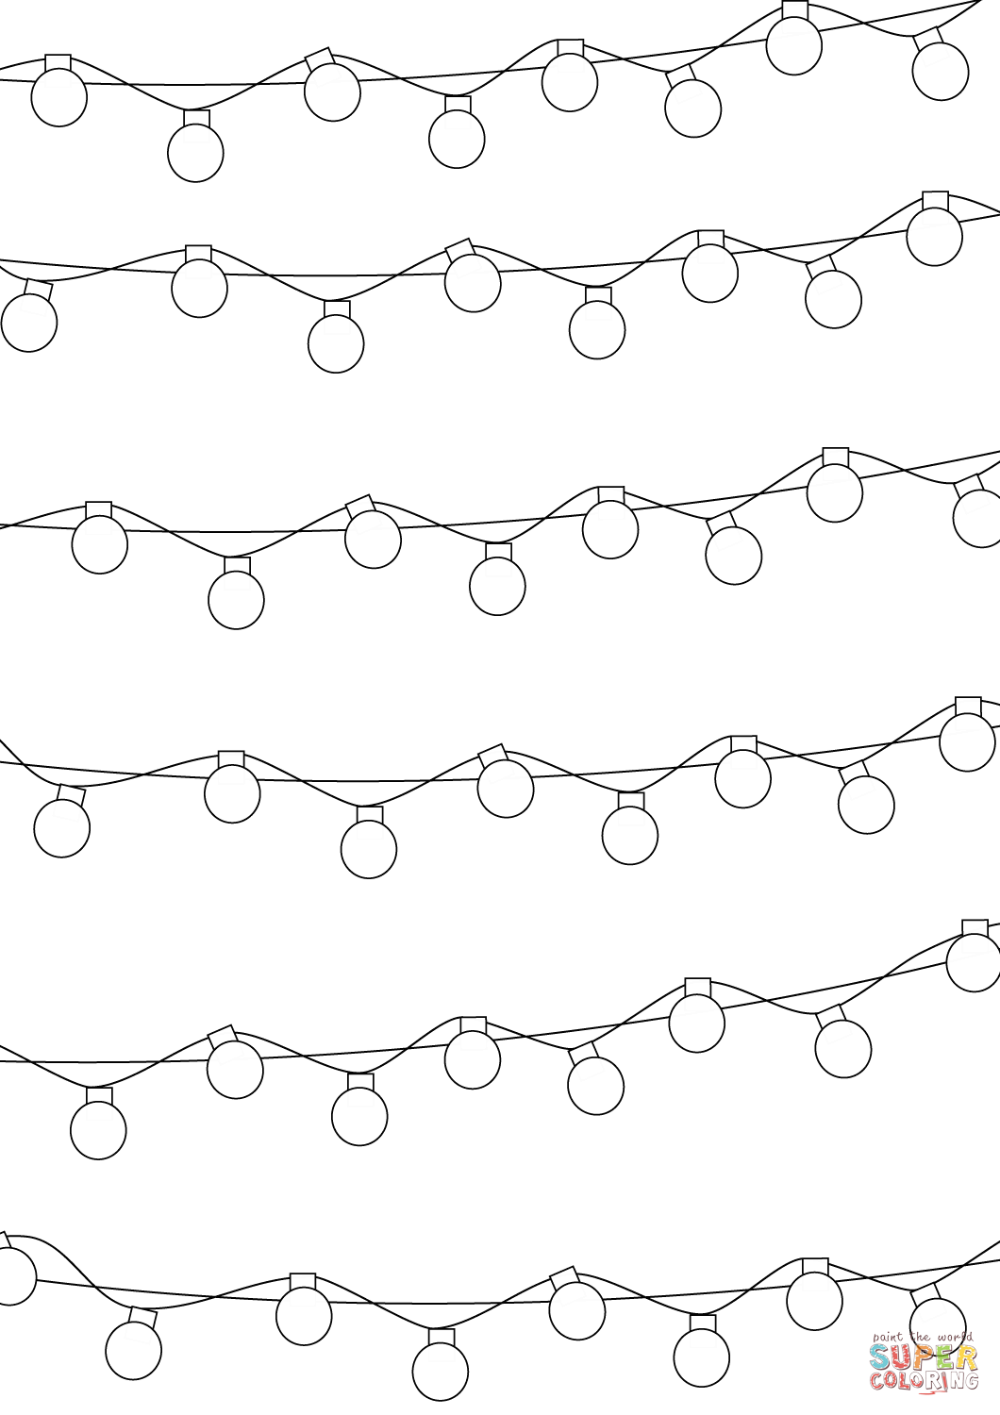 Christmas Lights Pattern Coloring Page Free Printable Coloring Pages Pattern Coloring Pages Christmas Tree Coloring Page Free Printable Coloring Pages